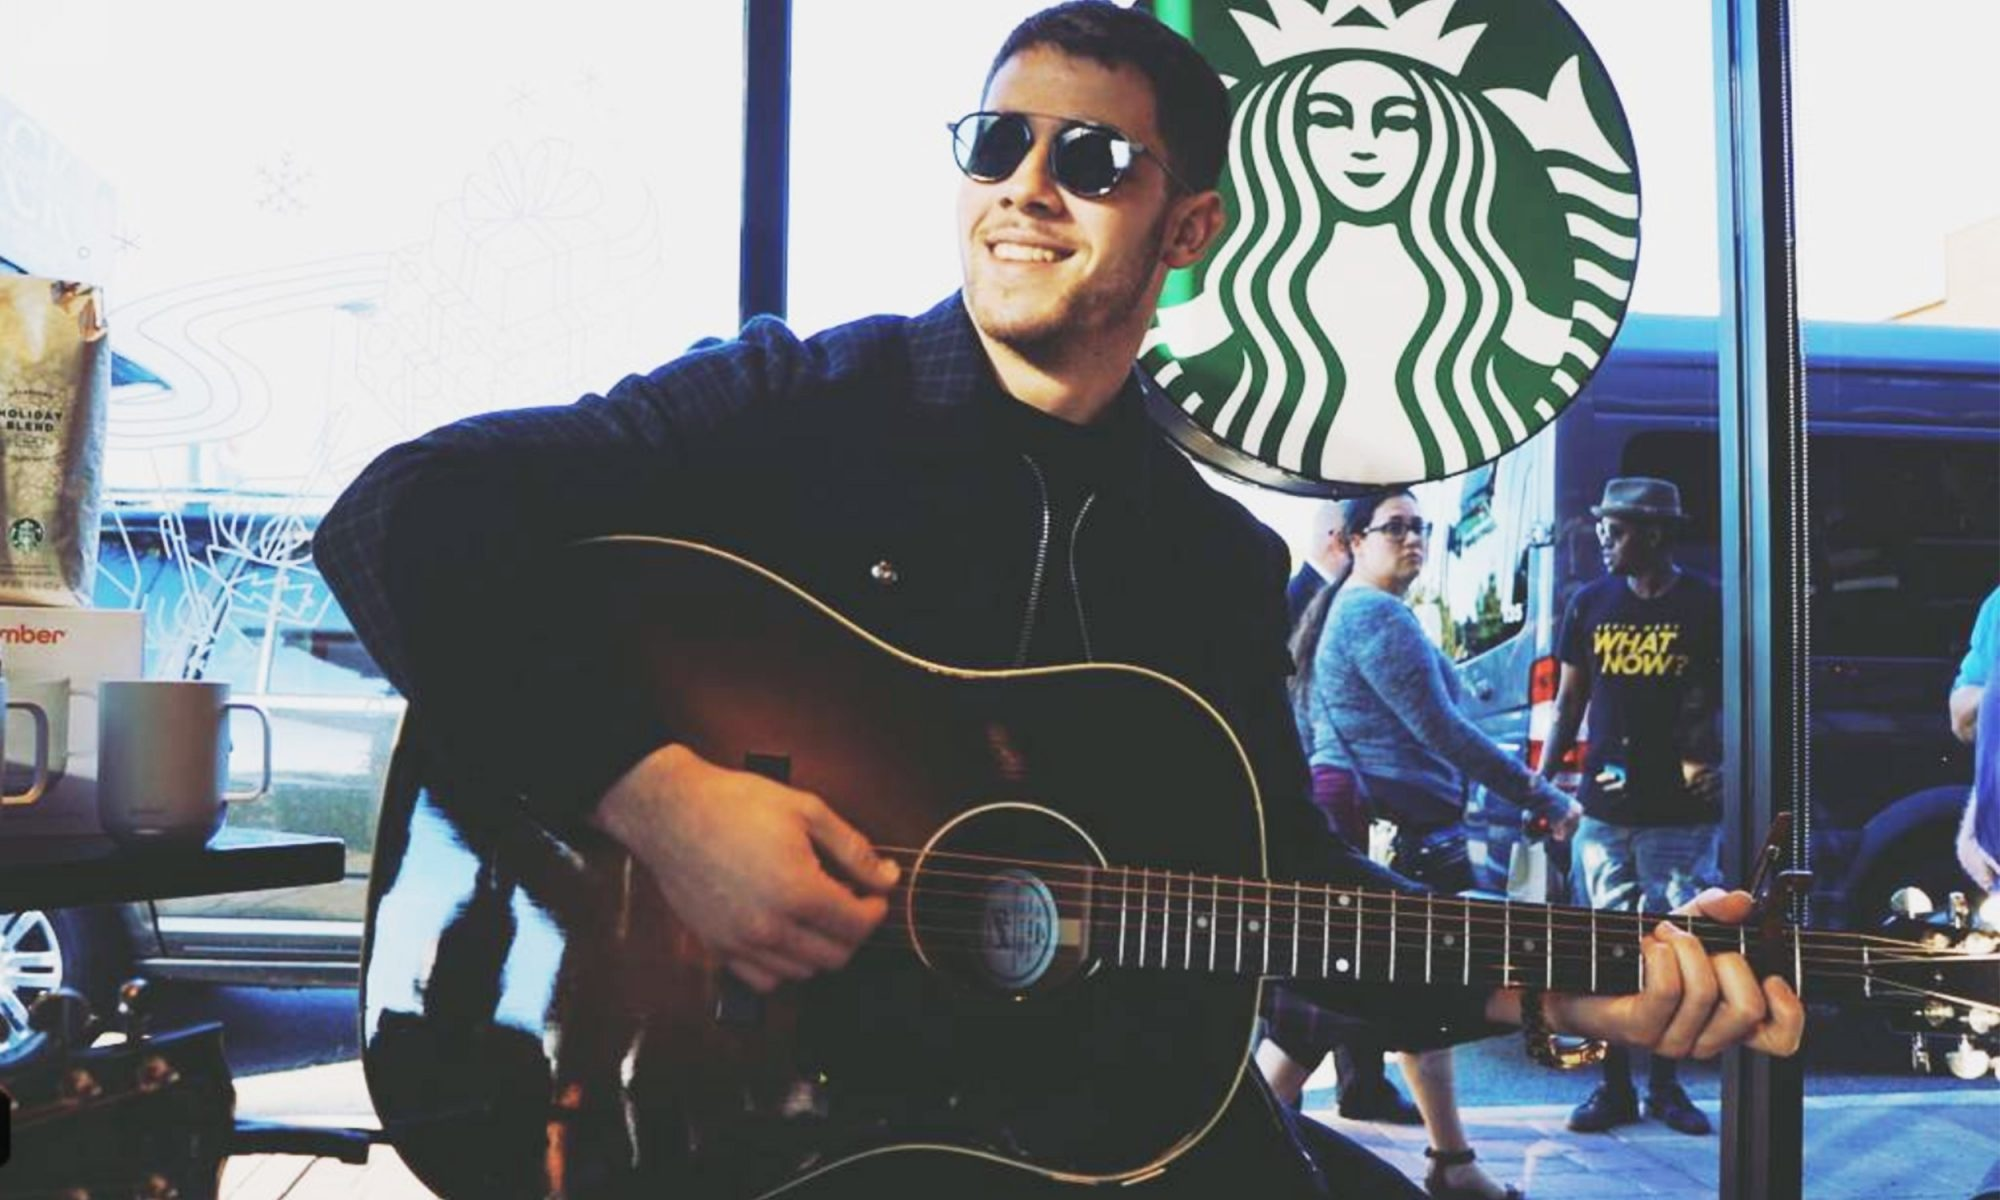 EC: Nick Jonas Played Some Tunes at Starbucks Over the Weekend